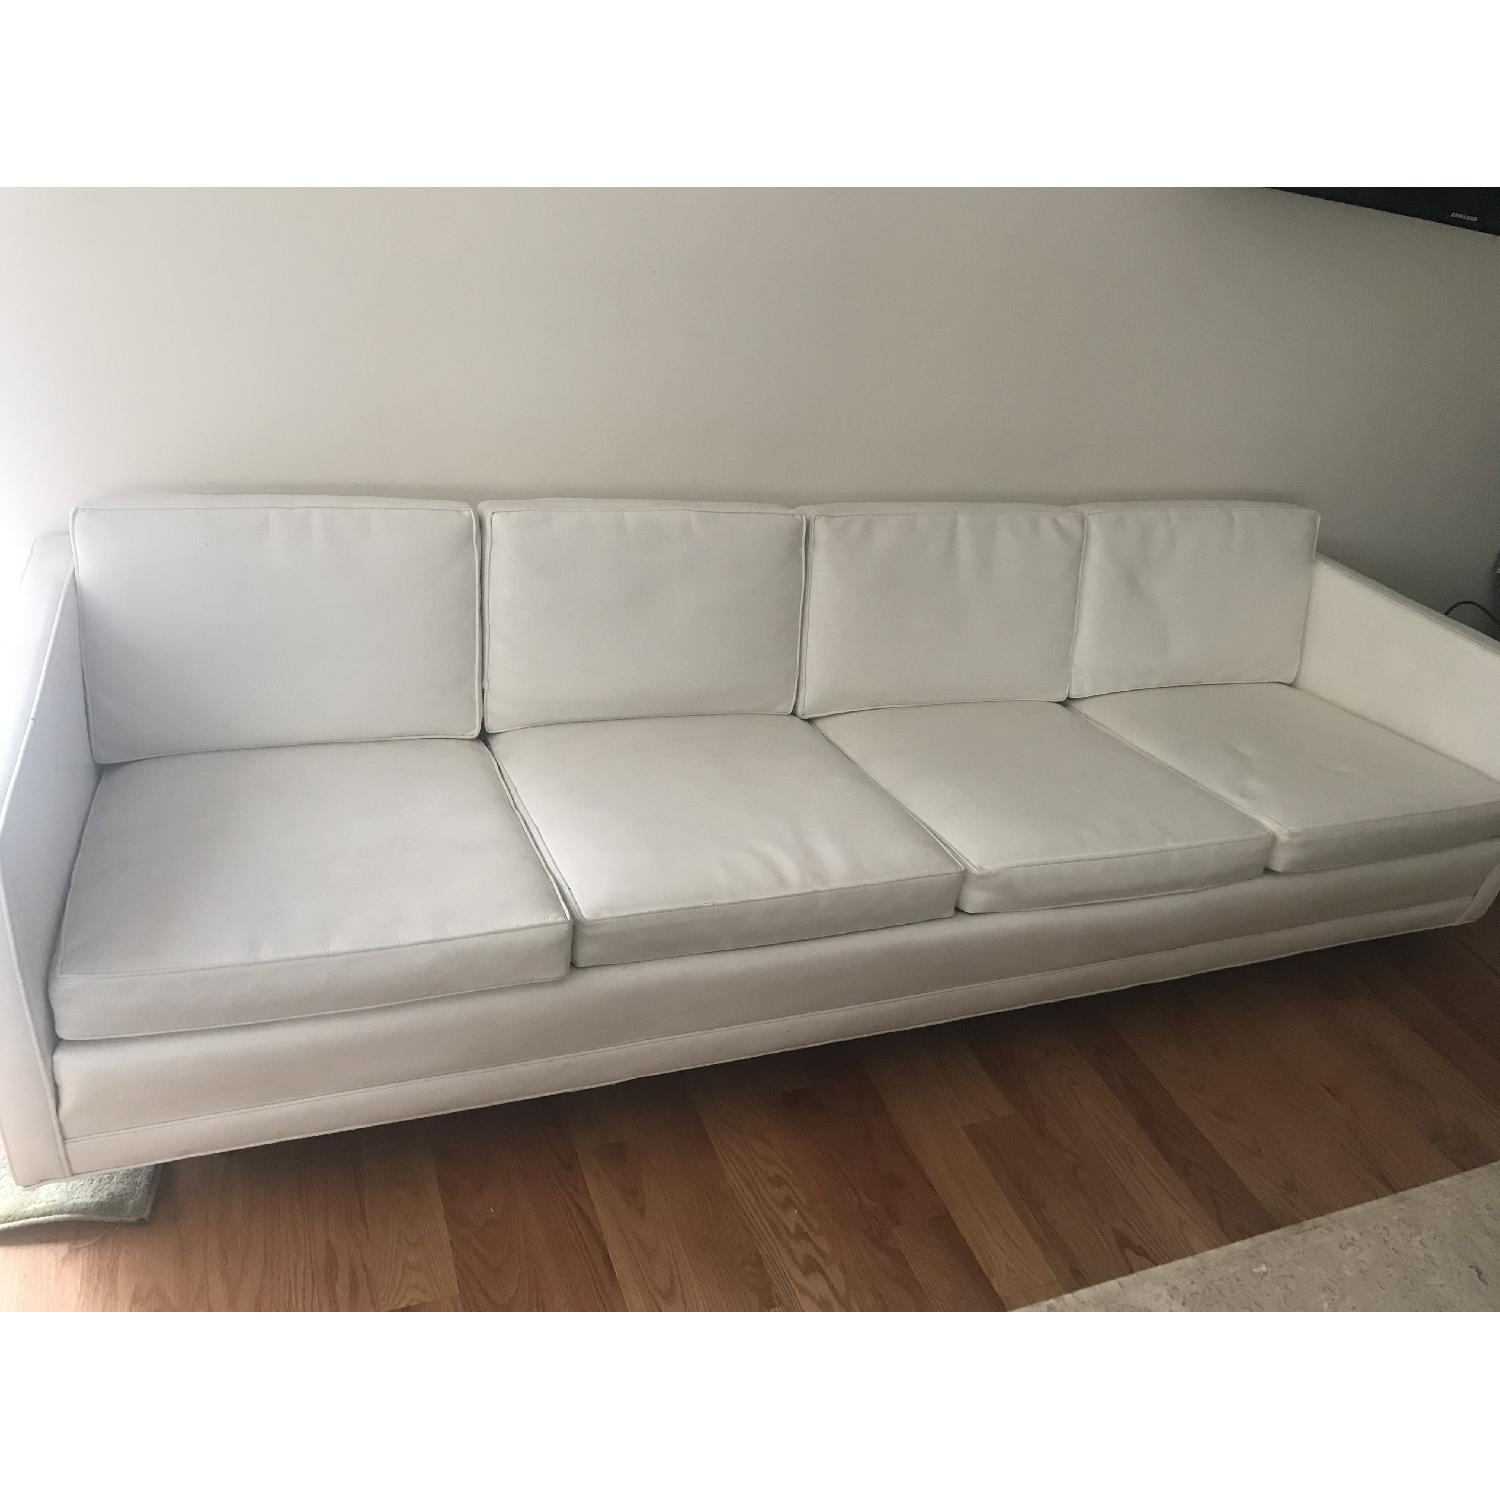 Drexel 1960s White Leather Modern Sofa - image-3